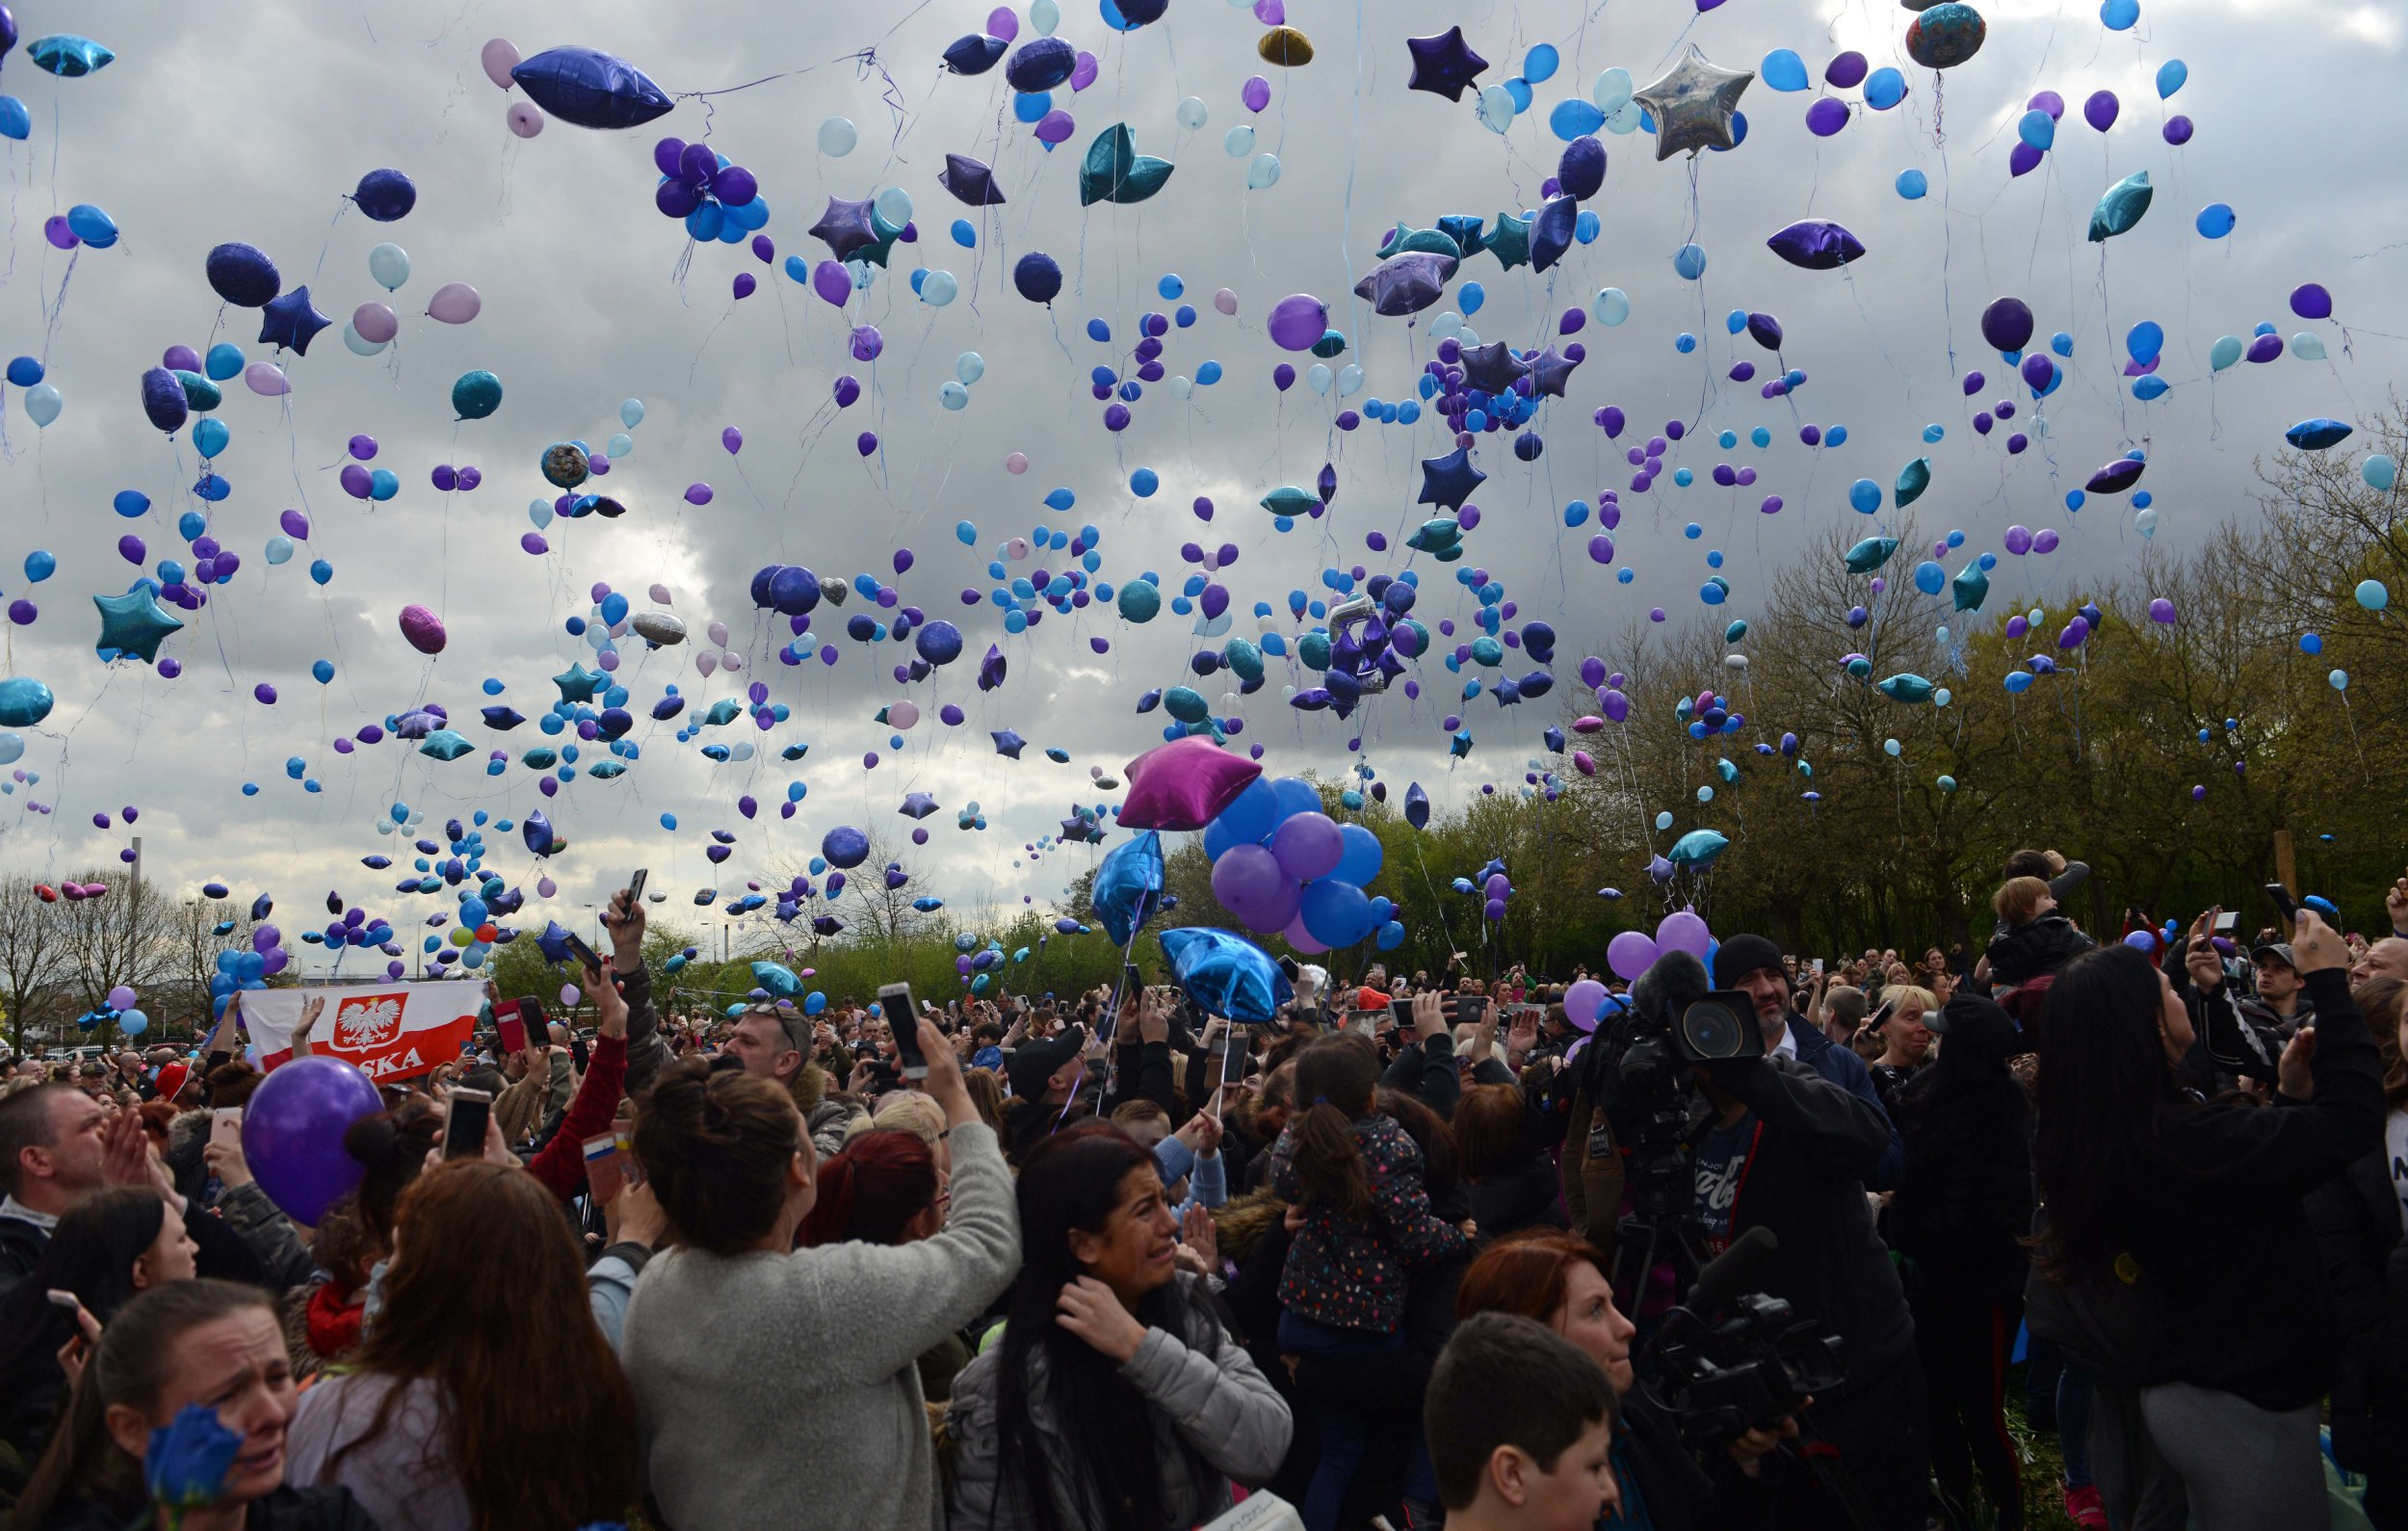 Thousands of people gather outside Alder Hey Hospital in Knotty Ash, Merseyside, to release purple and blue balloons in memory of Alfie Evans who passed away earlier this morning after having his life support machine turned off 5 days ago. 28 April 2018.